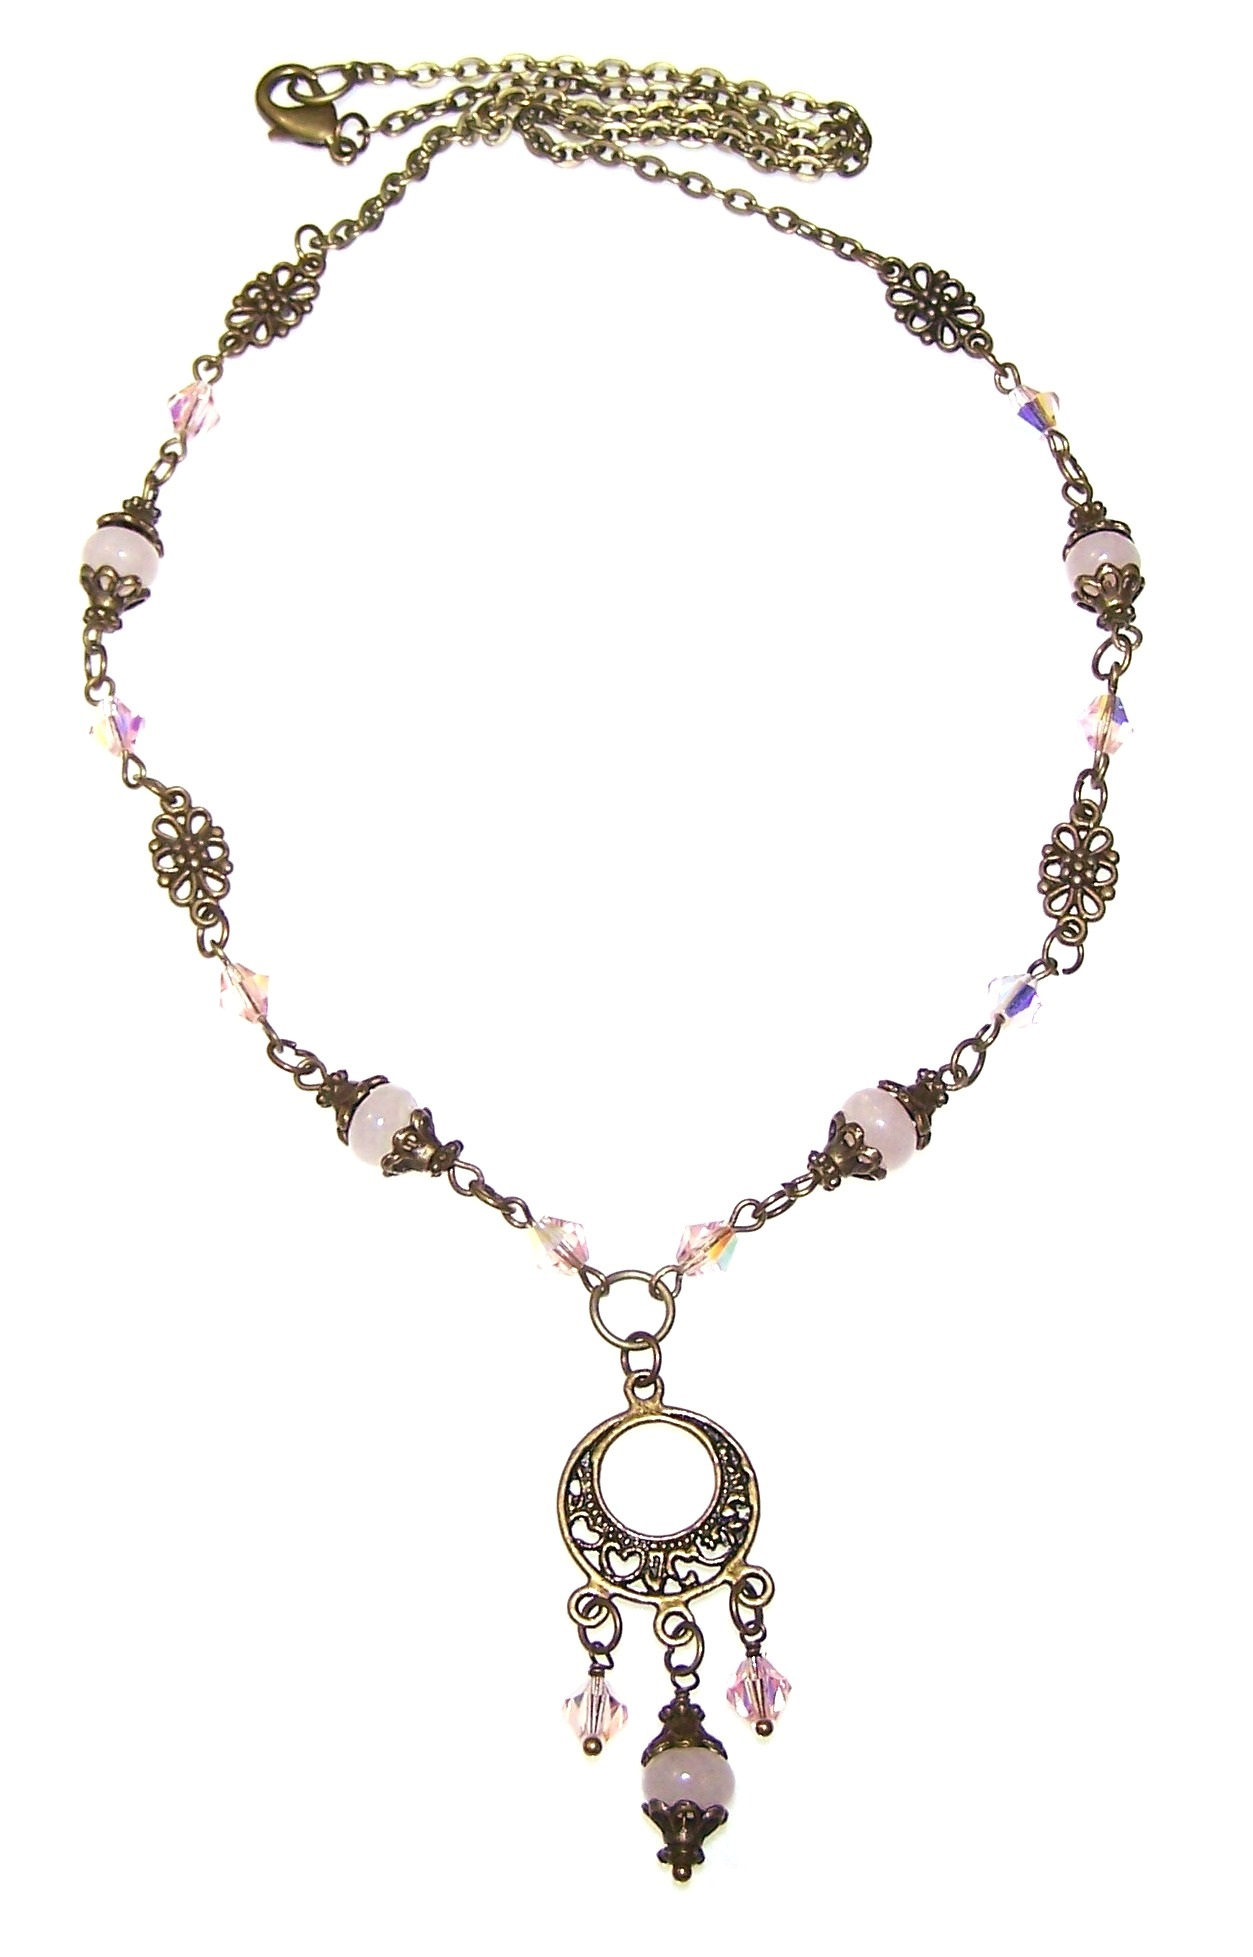 Iridescent Rose Necklace Free Beaded Jewelry Making Pattern